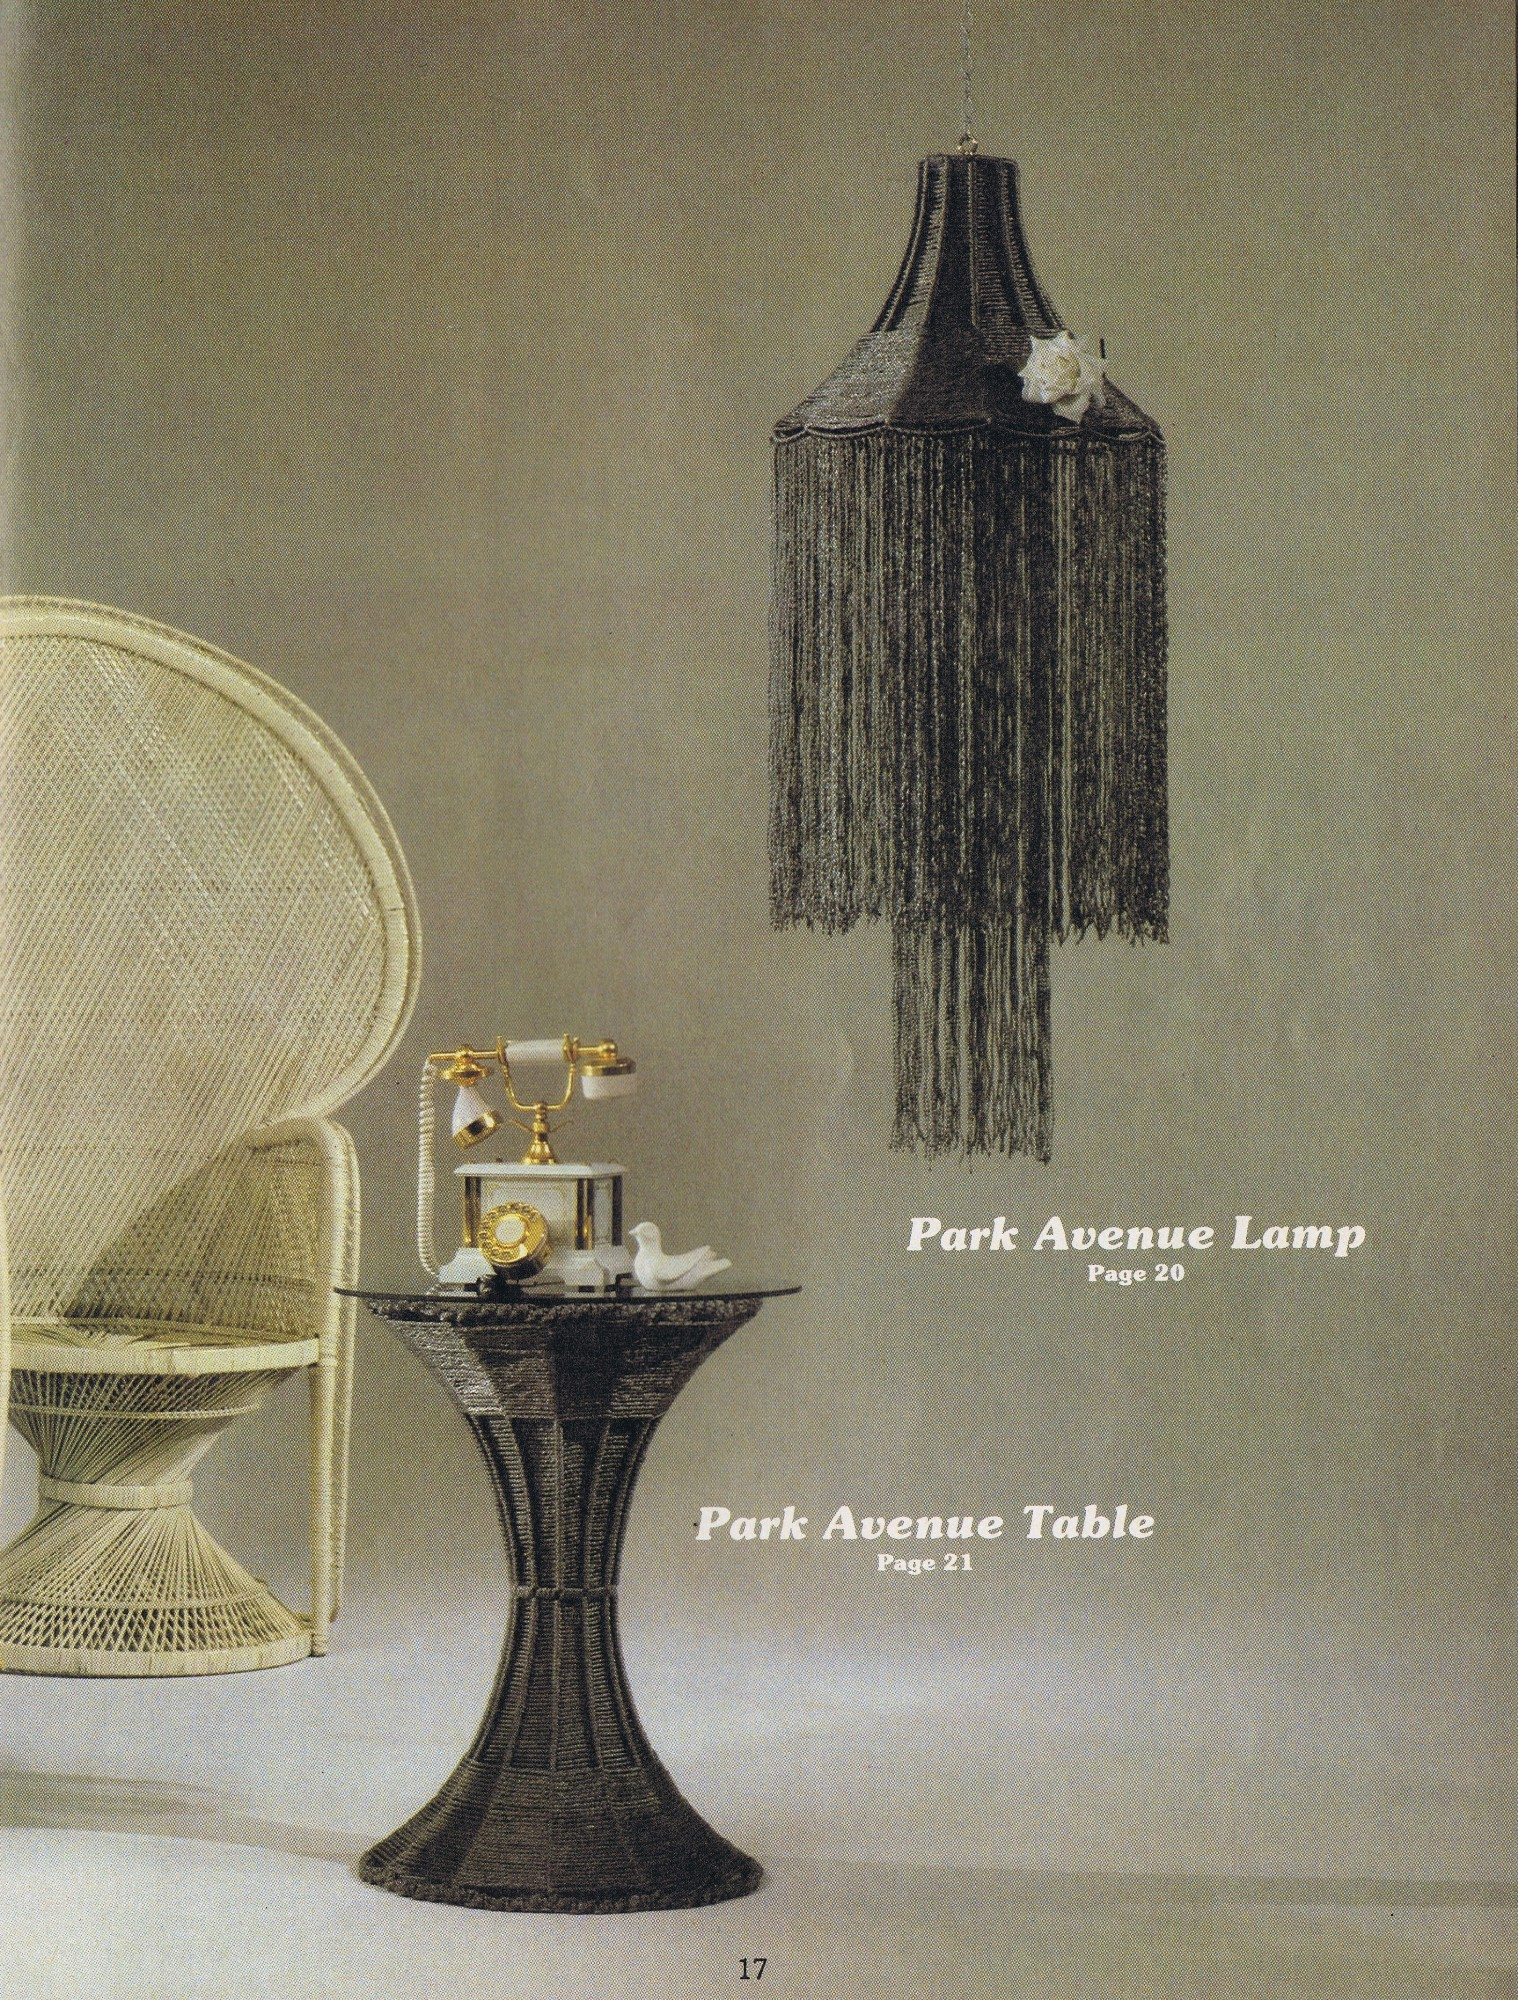 31  Beauty Macrame Table for Macrame Table Lamp  284dqh